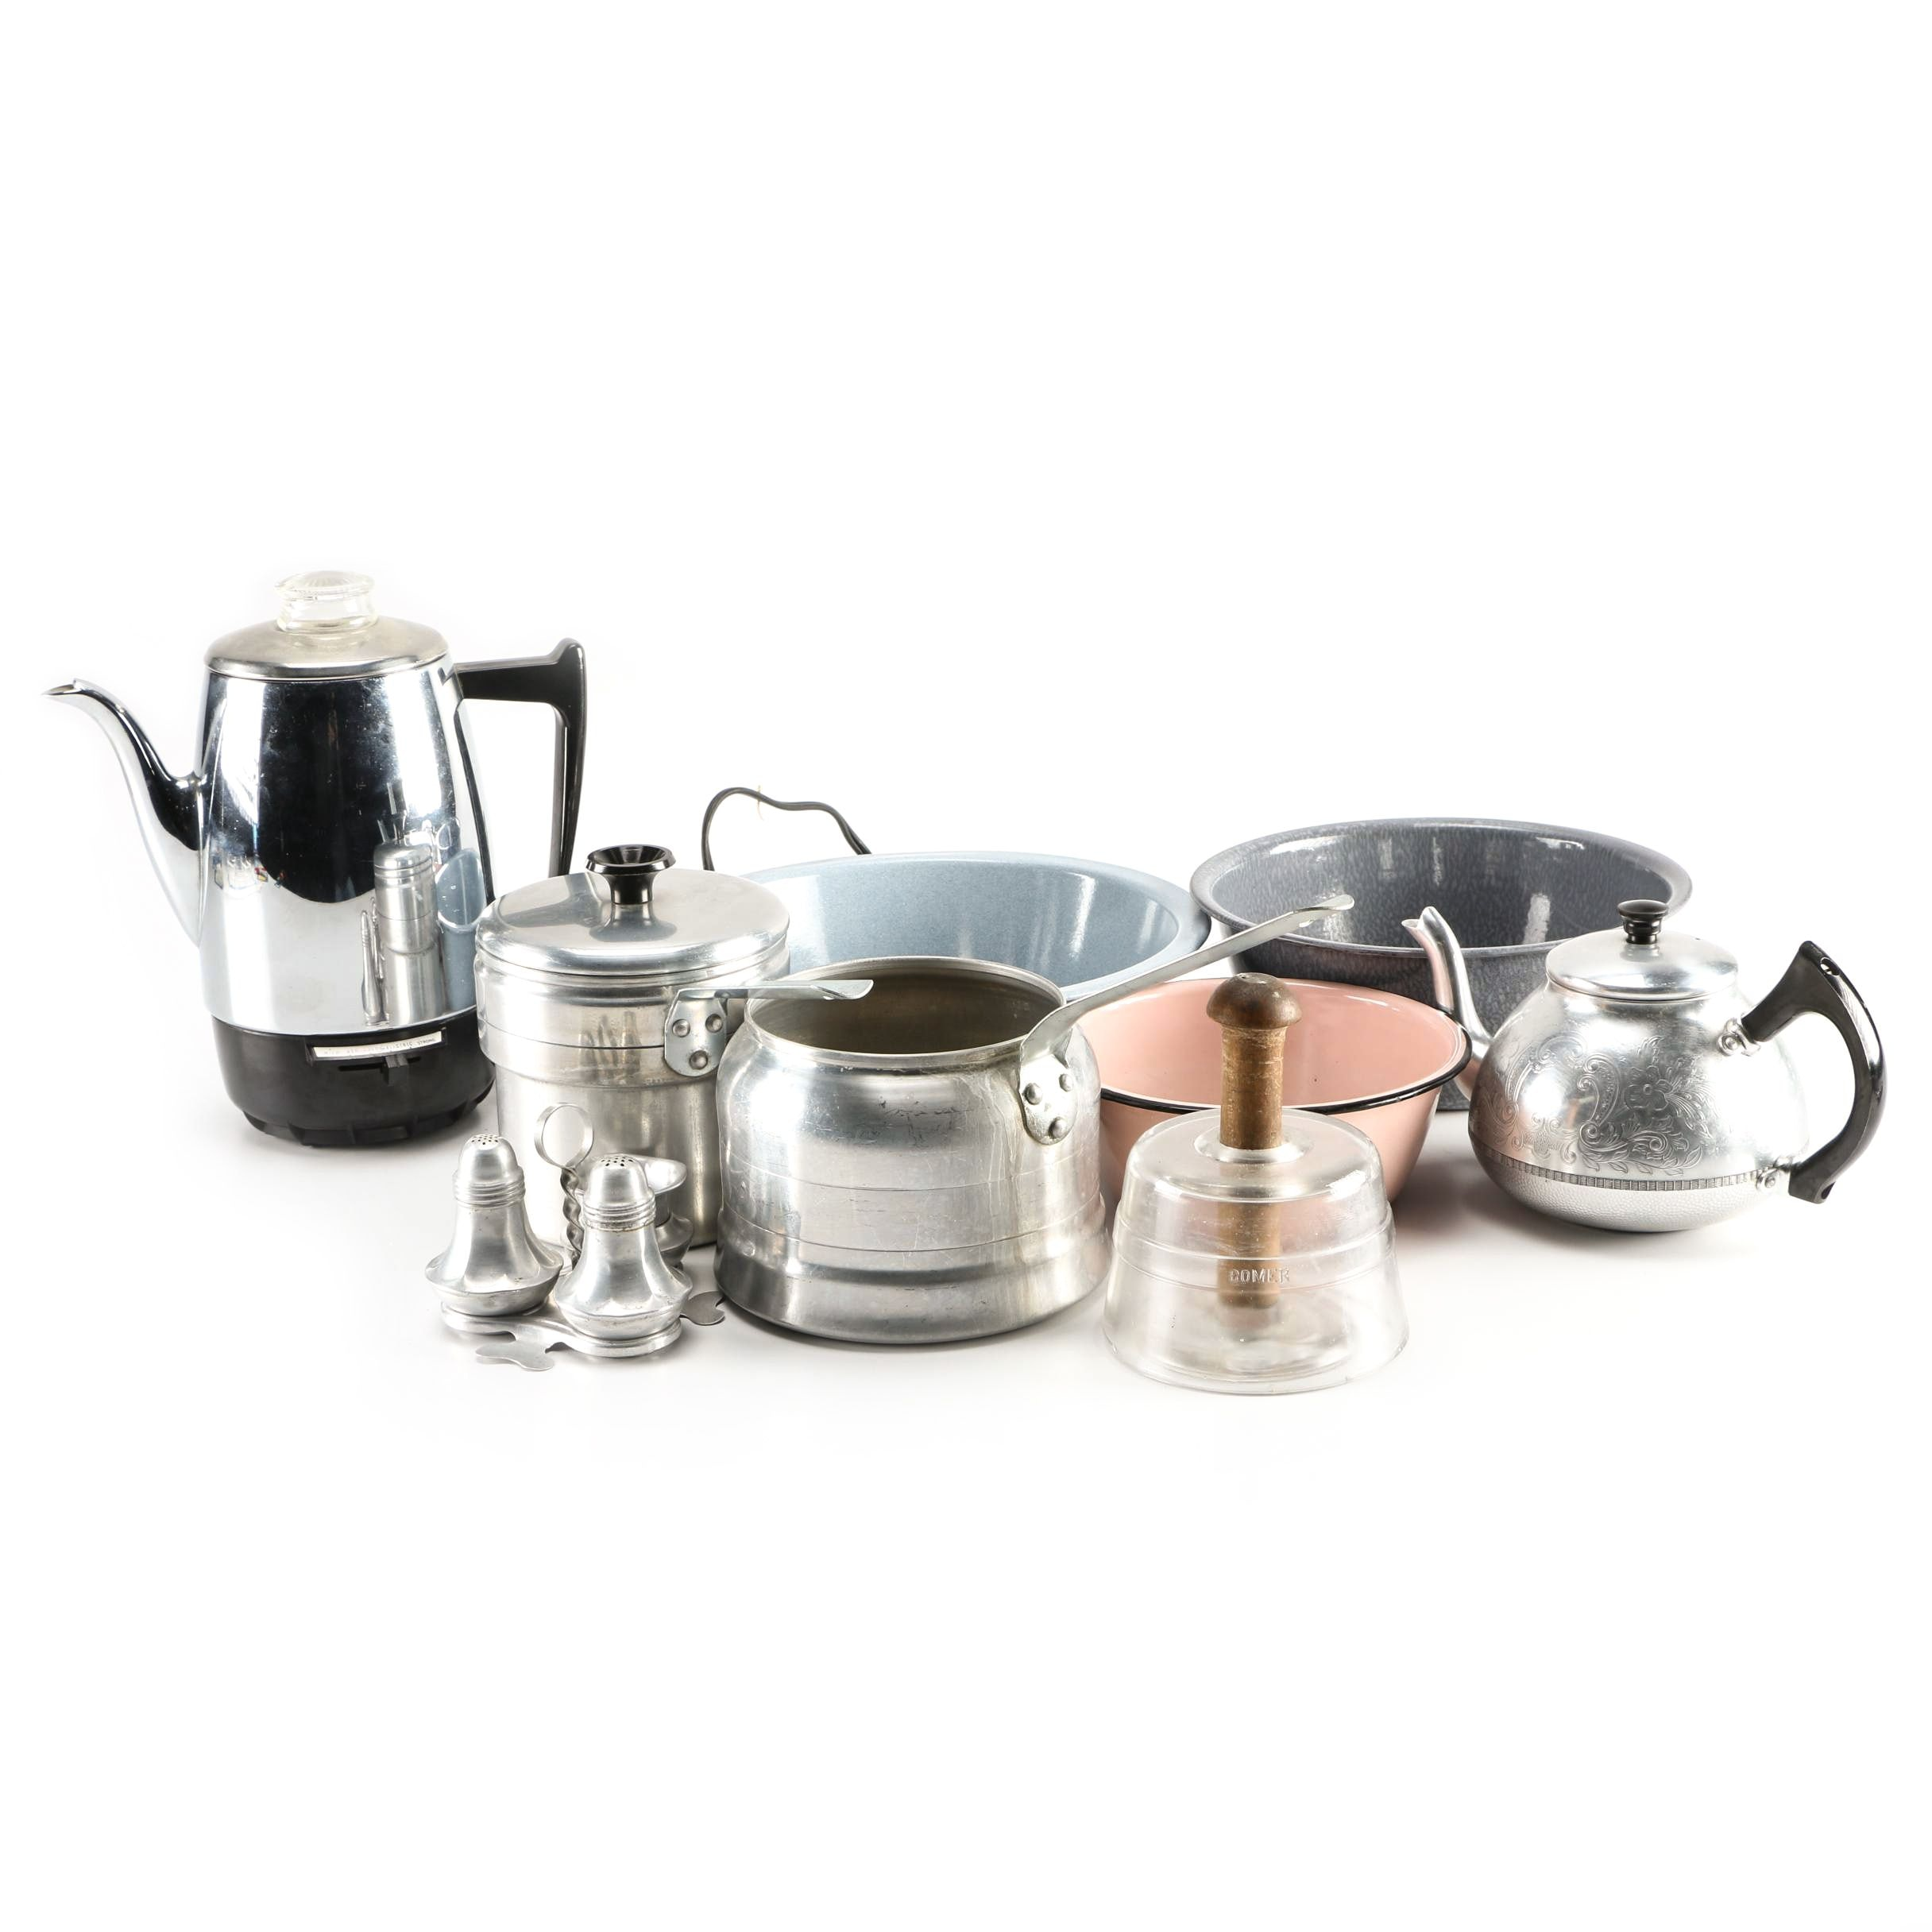 Collection of Kitchen Kettles, Pans and Teapots